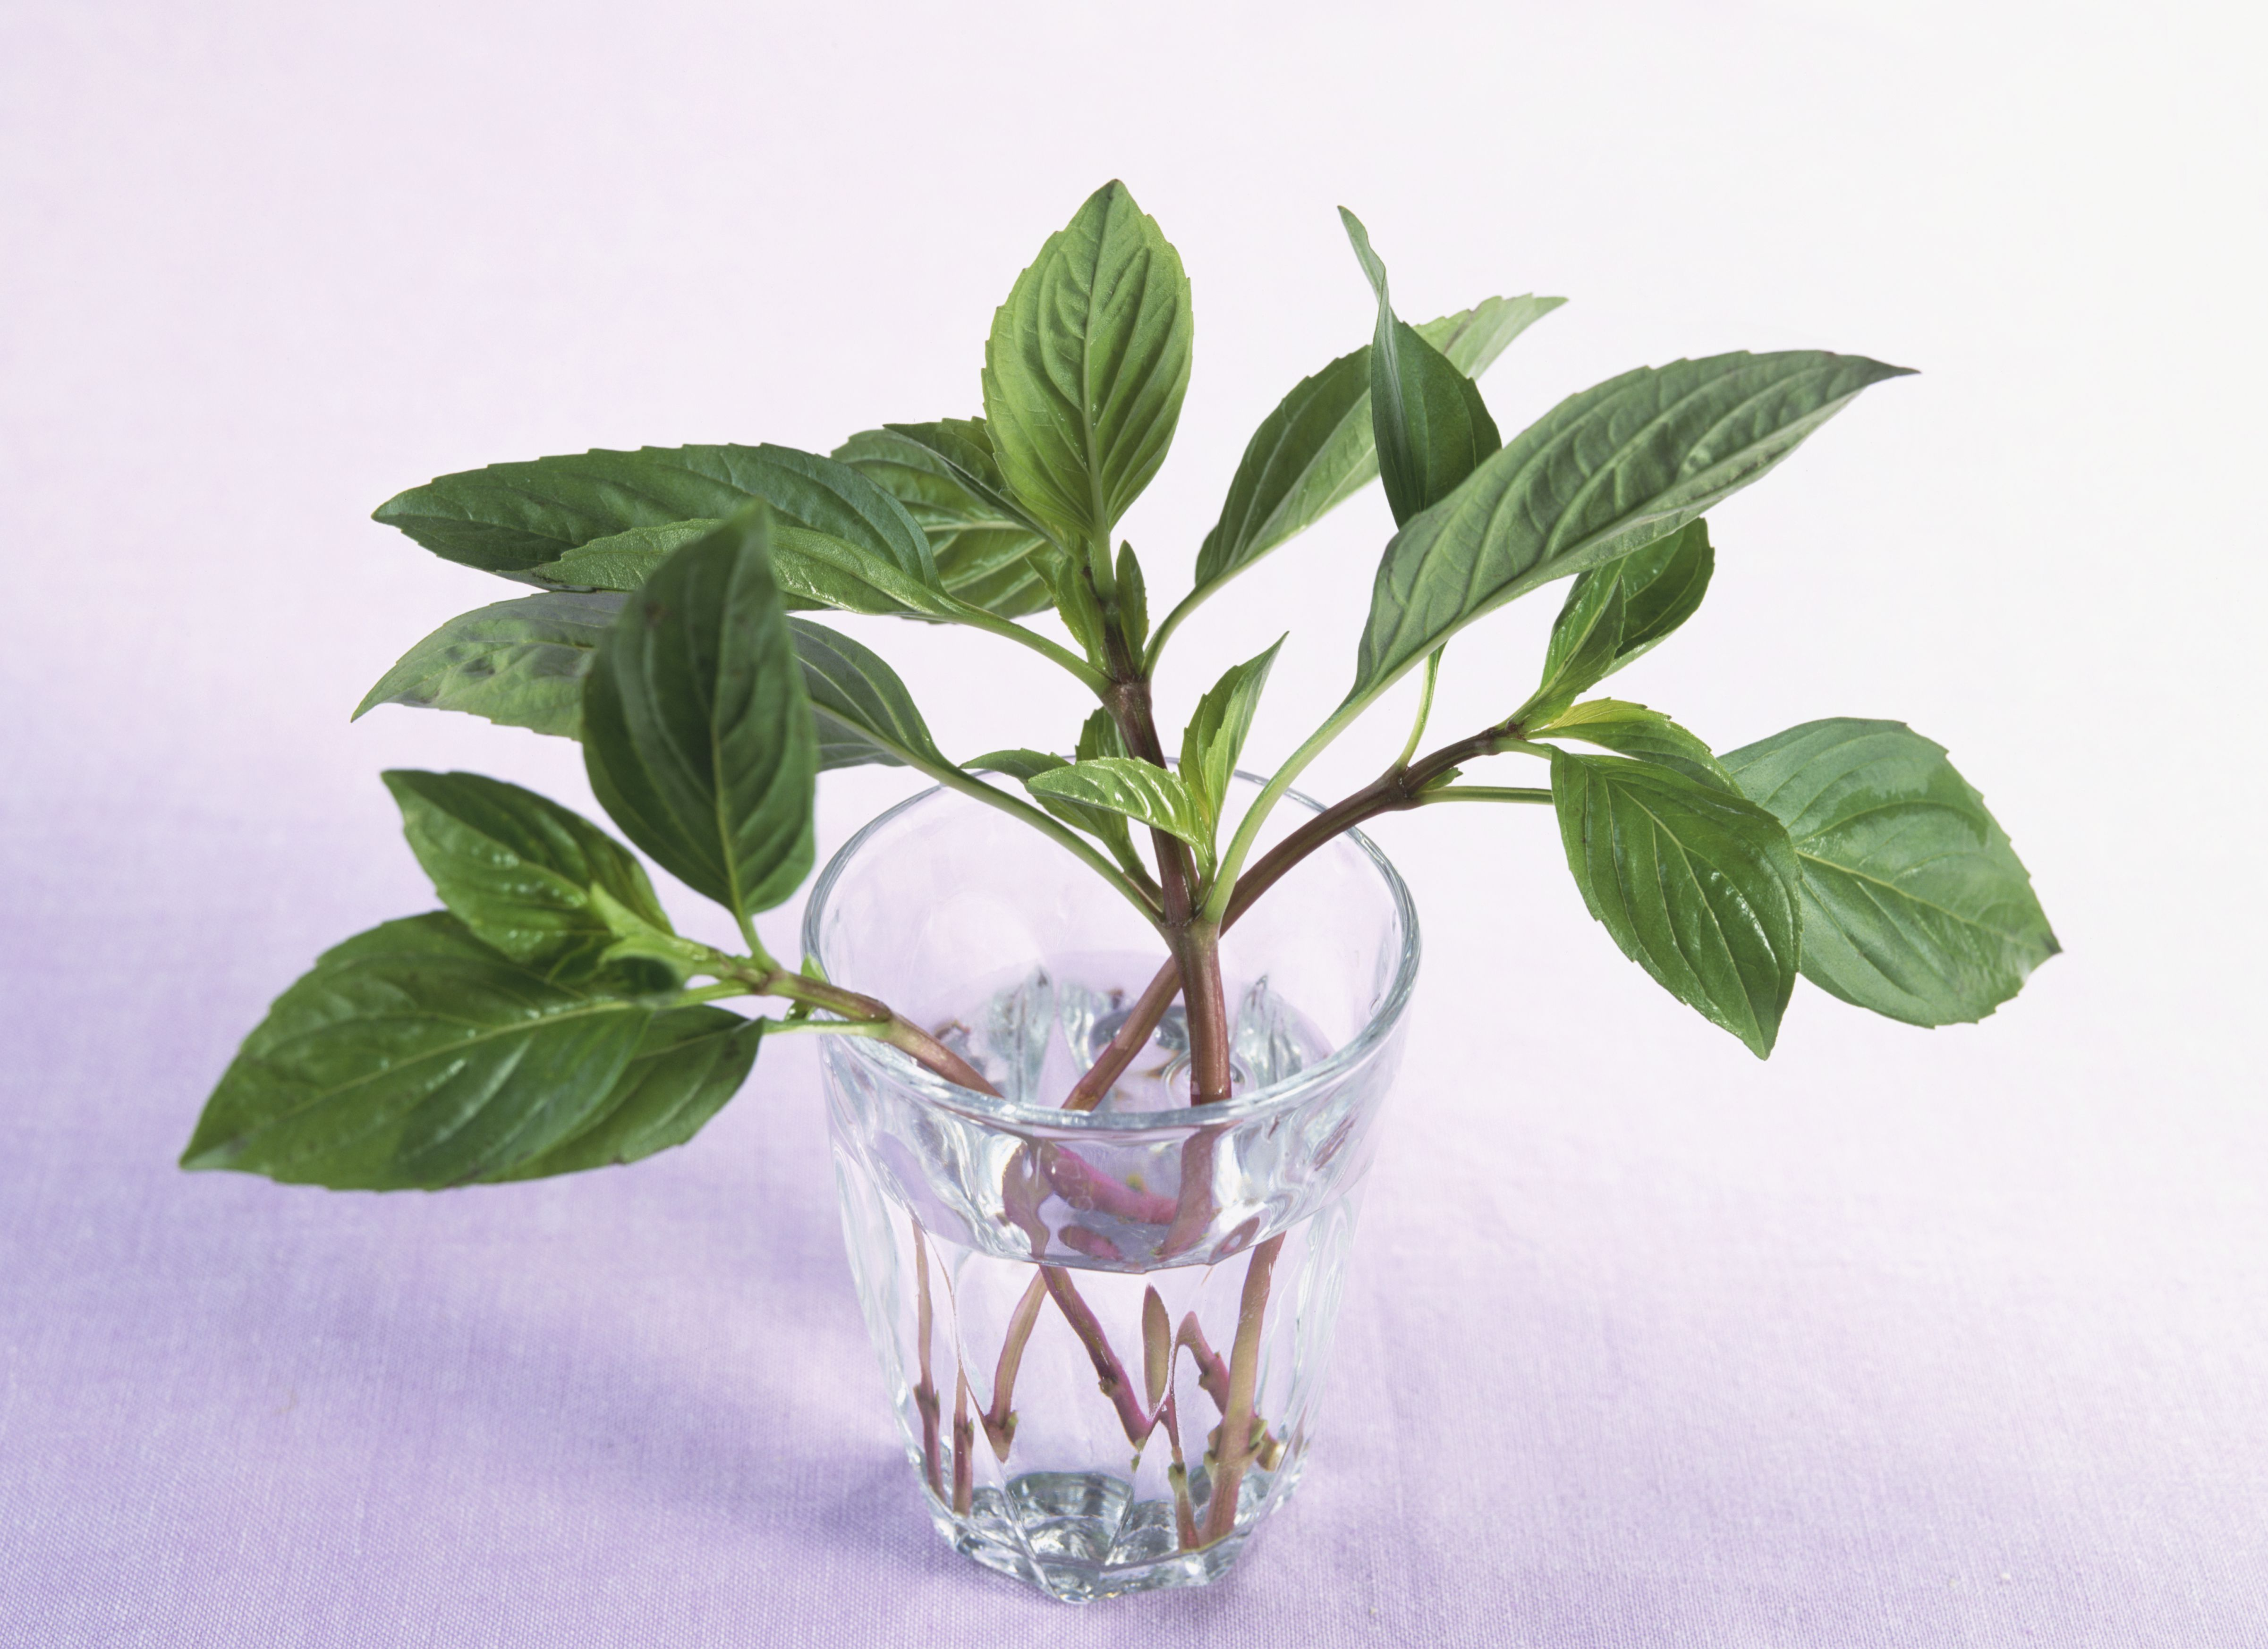 Used Auto Glass >> The Best Way to Store Basil and Keep It Fresh